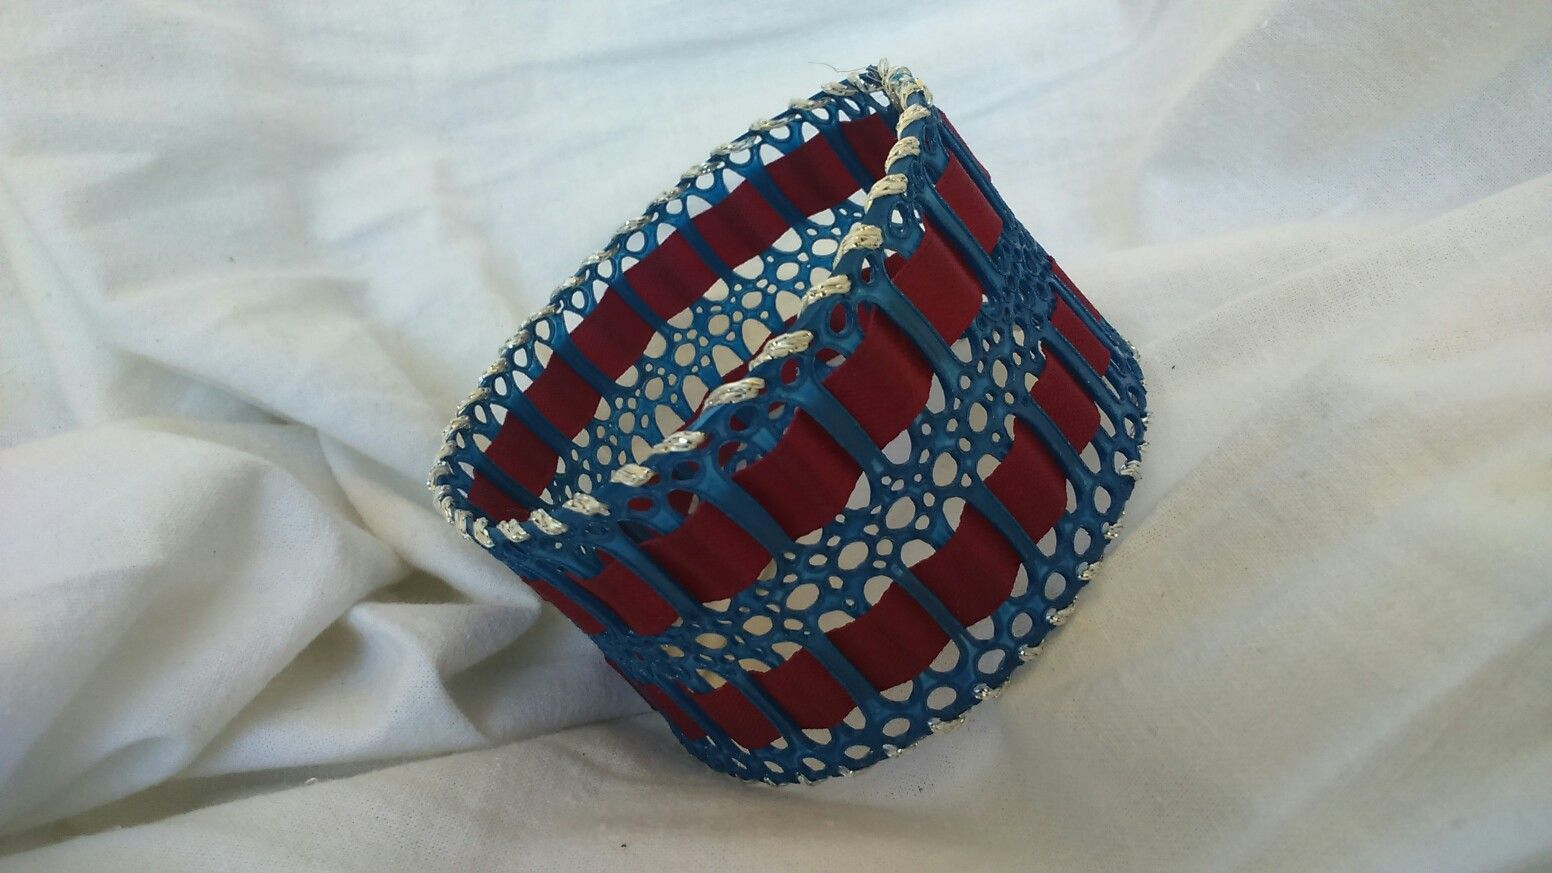 Blue red and silver bracelet made from